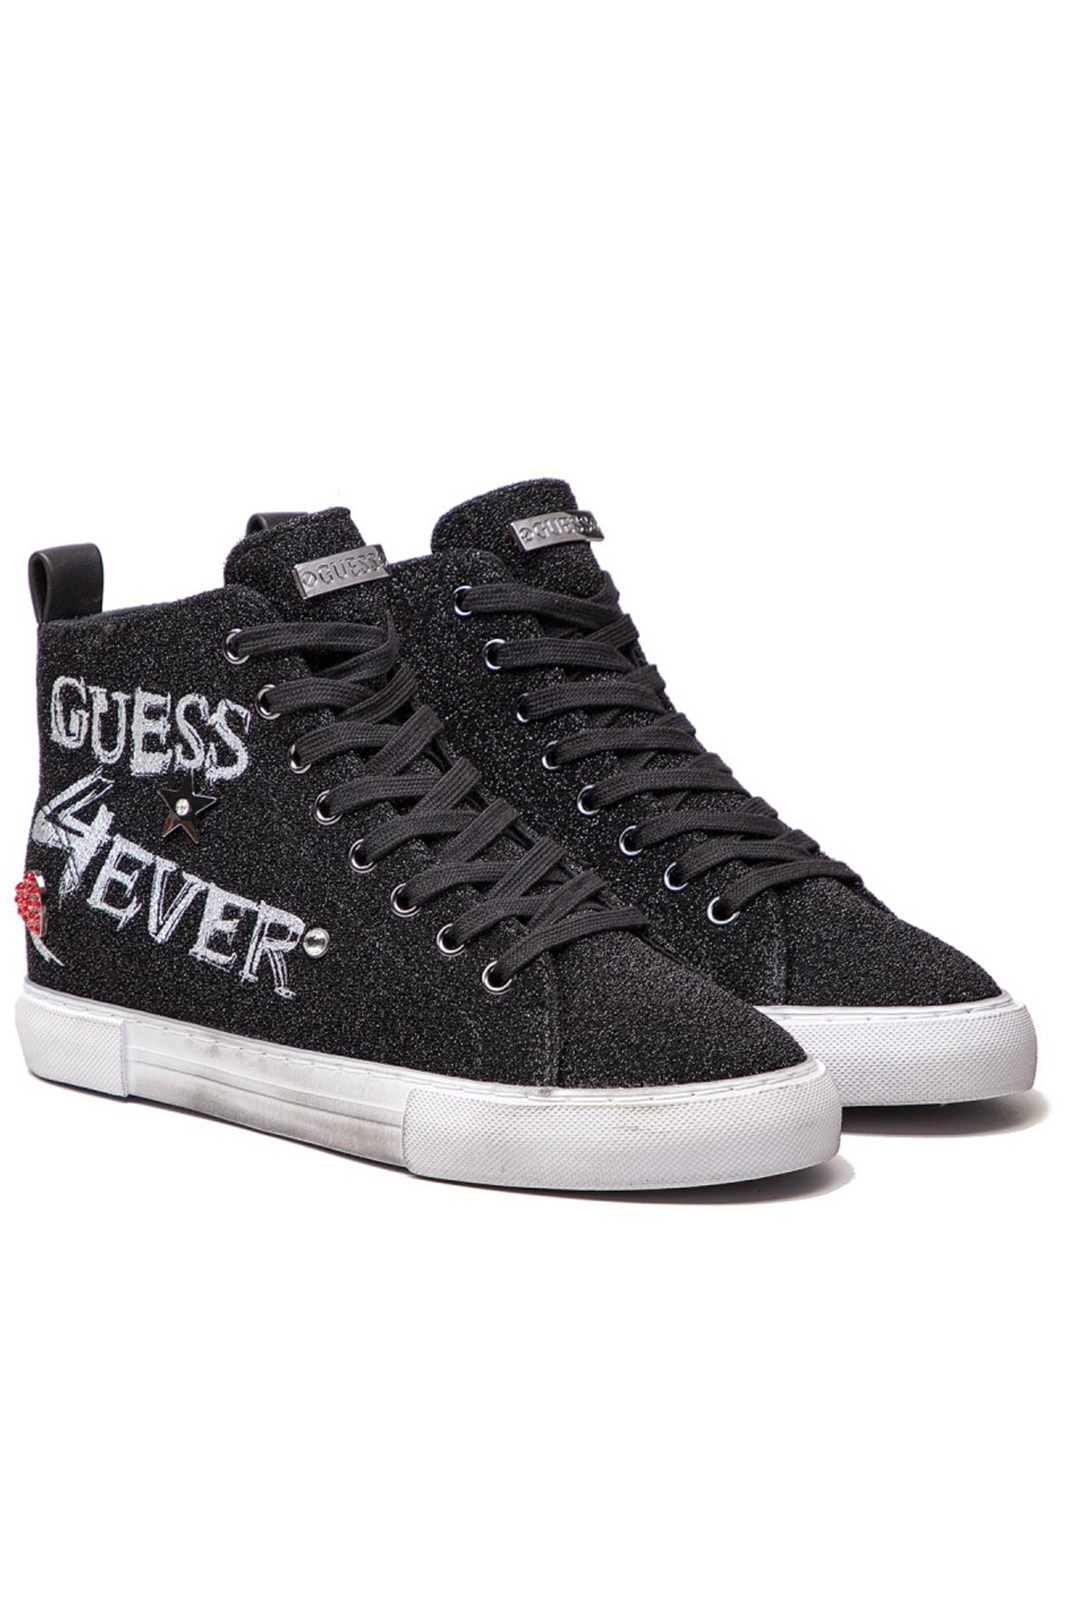 Baskets / Sneakers  Guess jeans FLPYE4 FAM12 BLACK